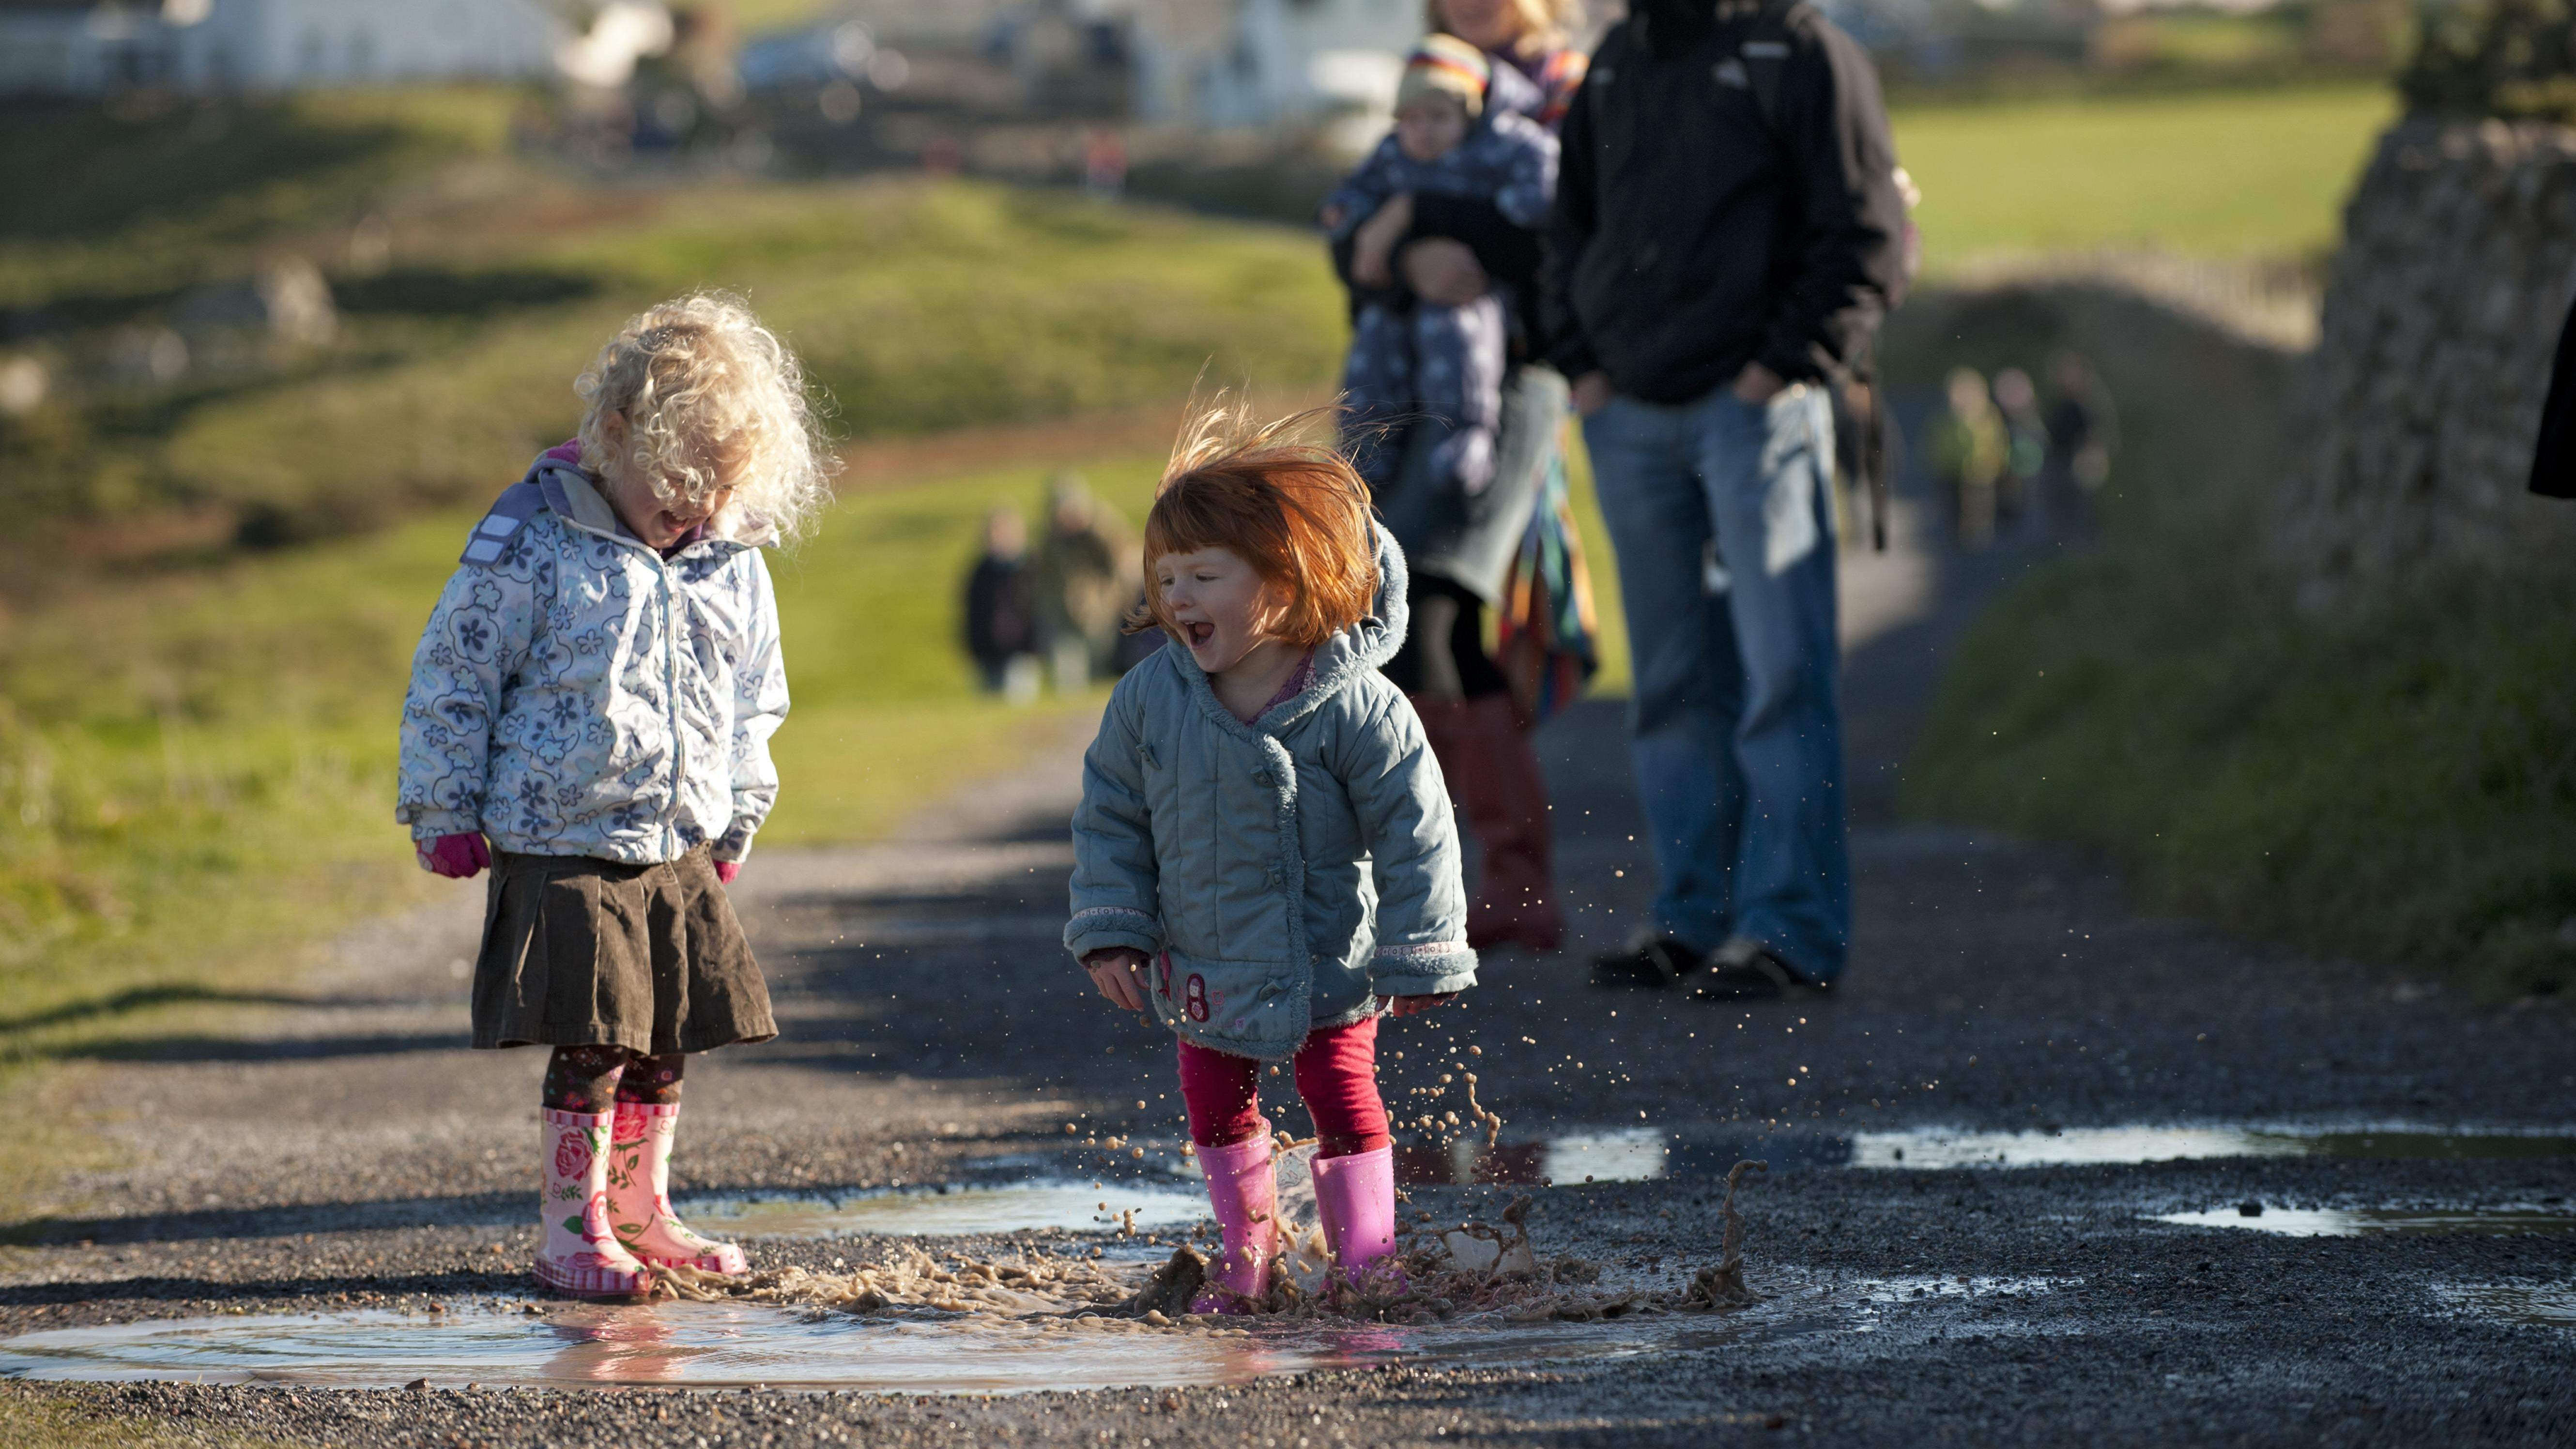 Two little girls splashing in puddle with parents in background